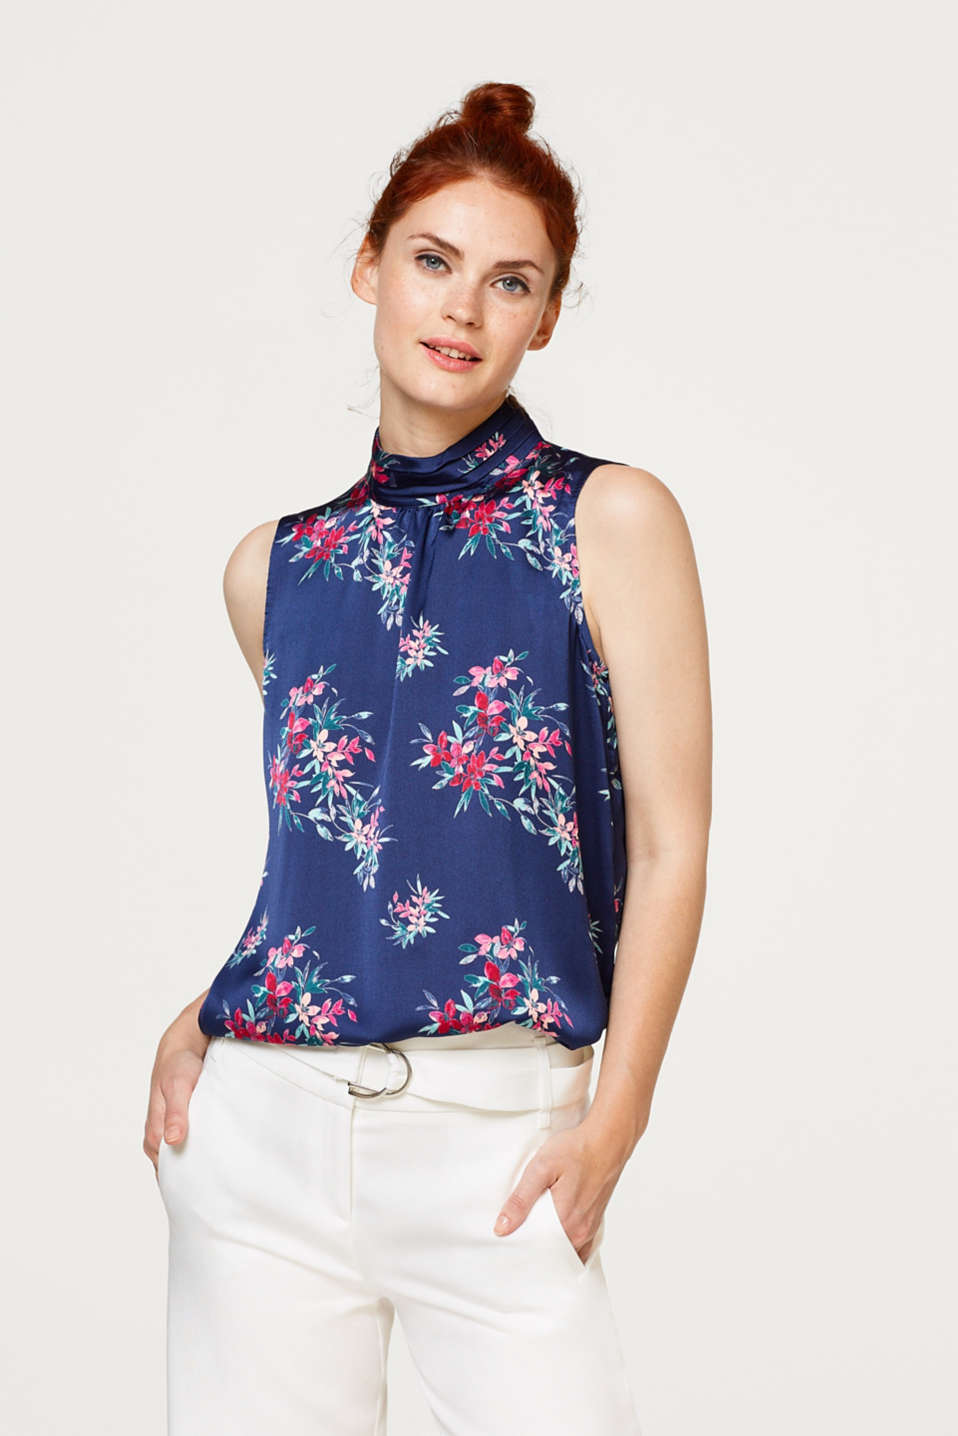 Esprit - Printed blouse with a stand-up collar